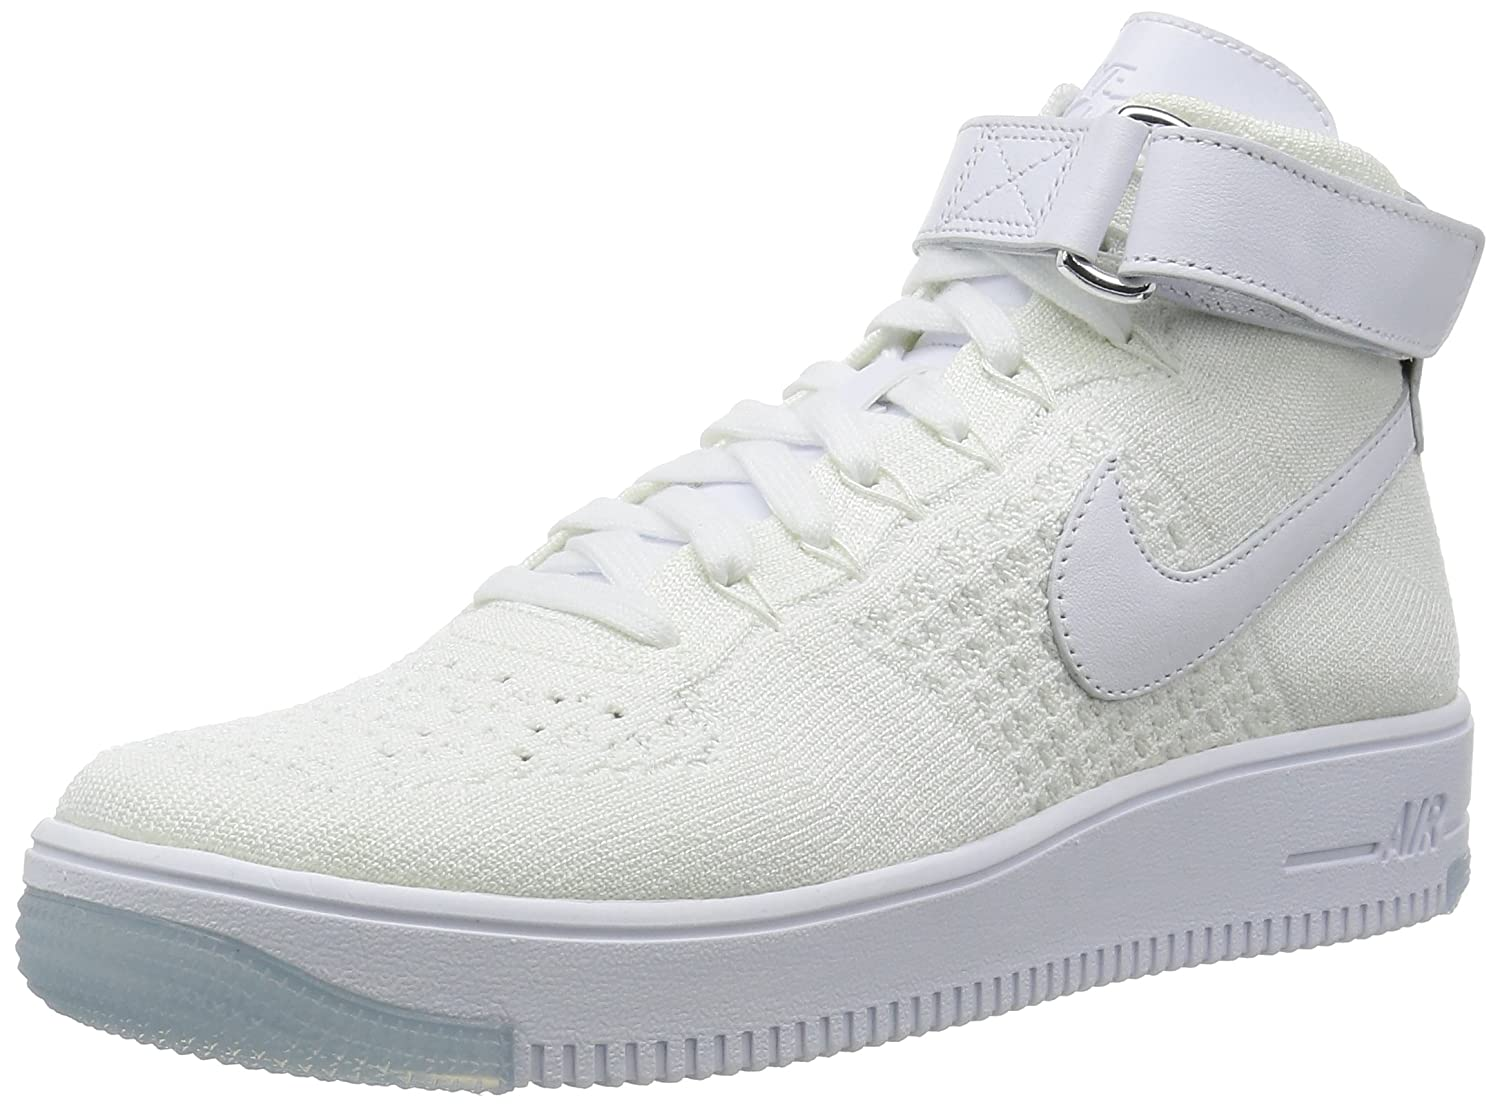 the best attitude d8fbc 5fe9d Nike Mens AF1 Ultra Flyknit Mid Mid Lightweight Fashion Sneakers